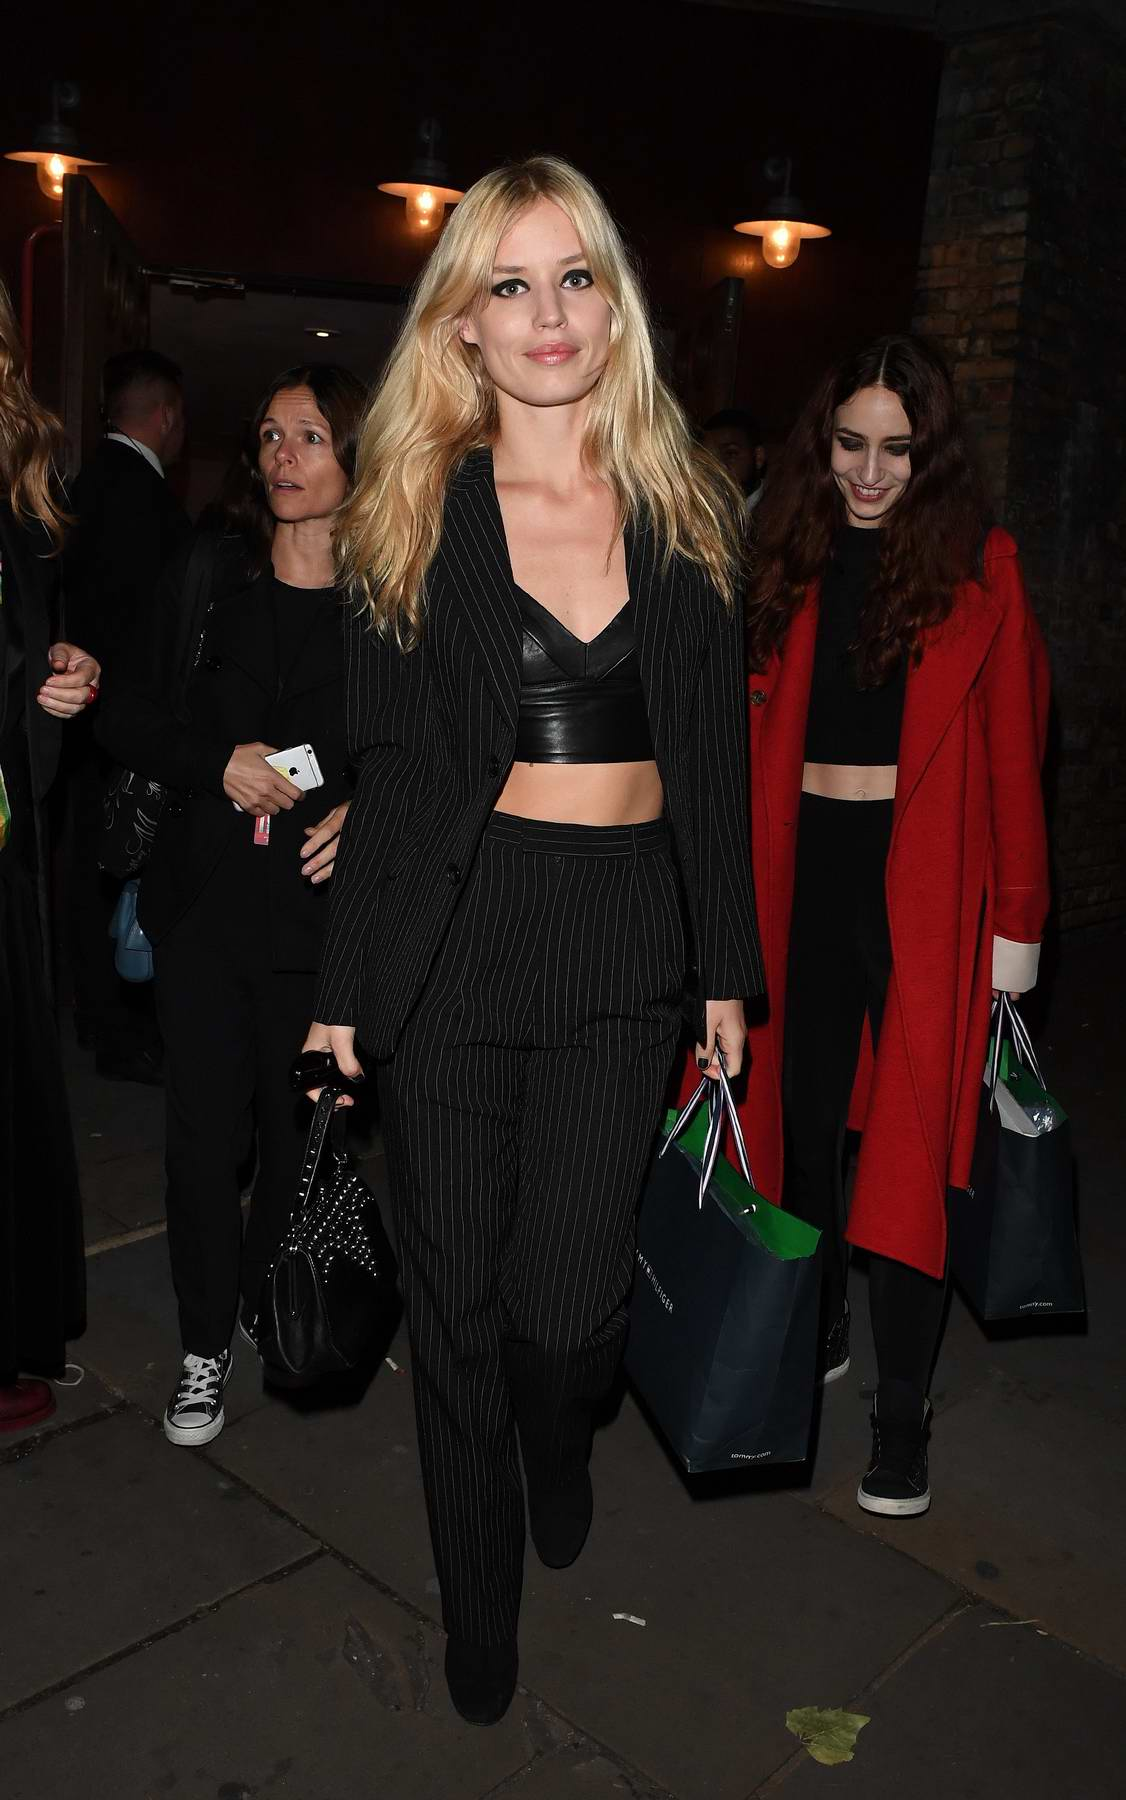 Georgia May Jagger leaving Camden Roundhouse following the Tommy Hilfiger Show during London Fashion Week